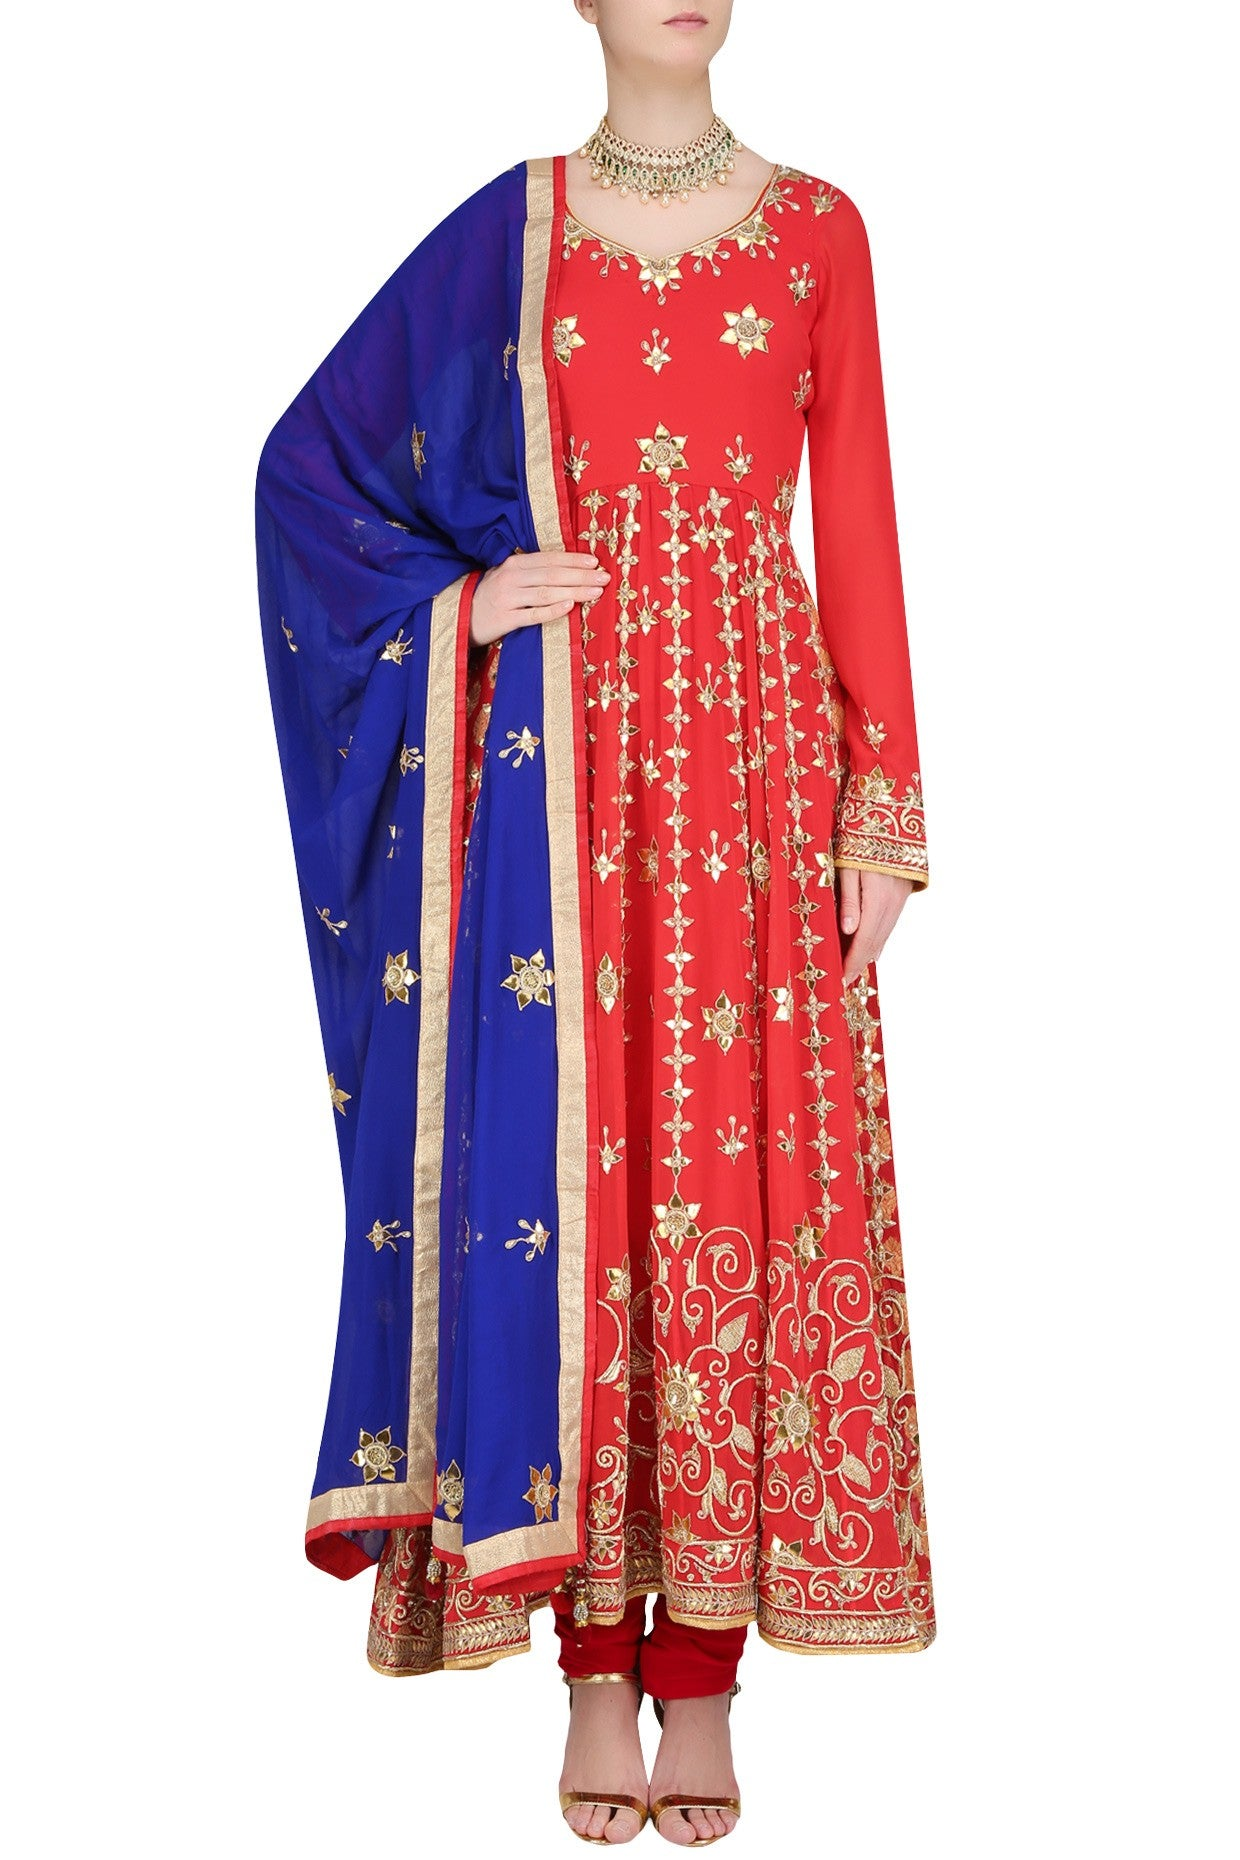 Ravishing and radiant red floor length flary kalidar